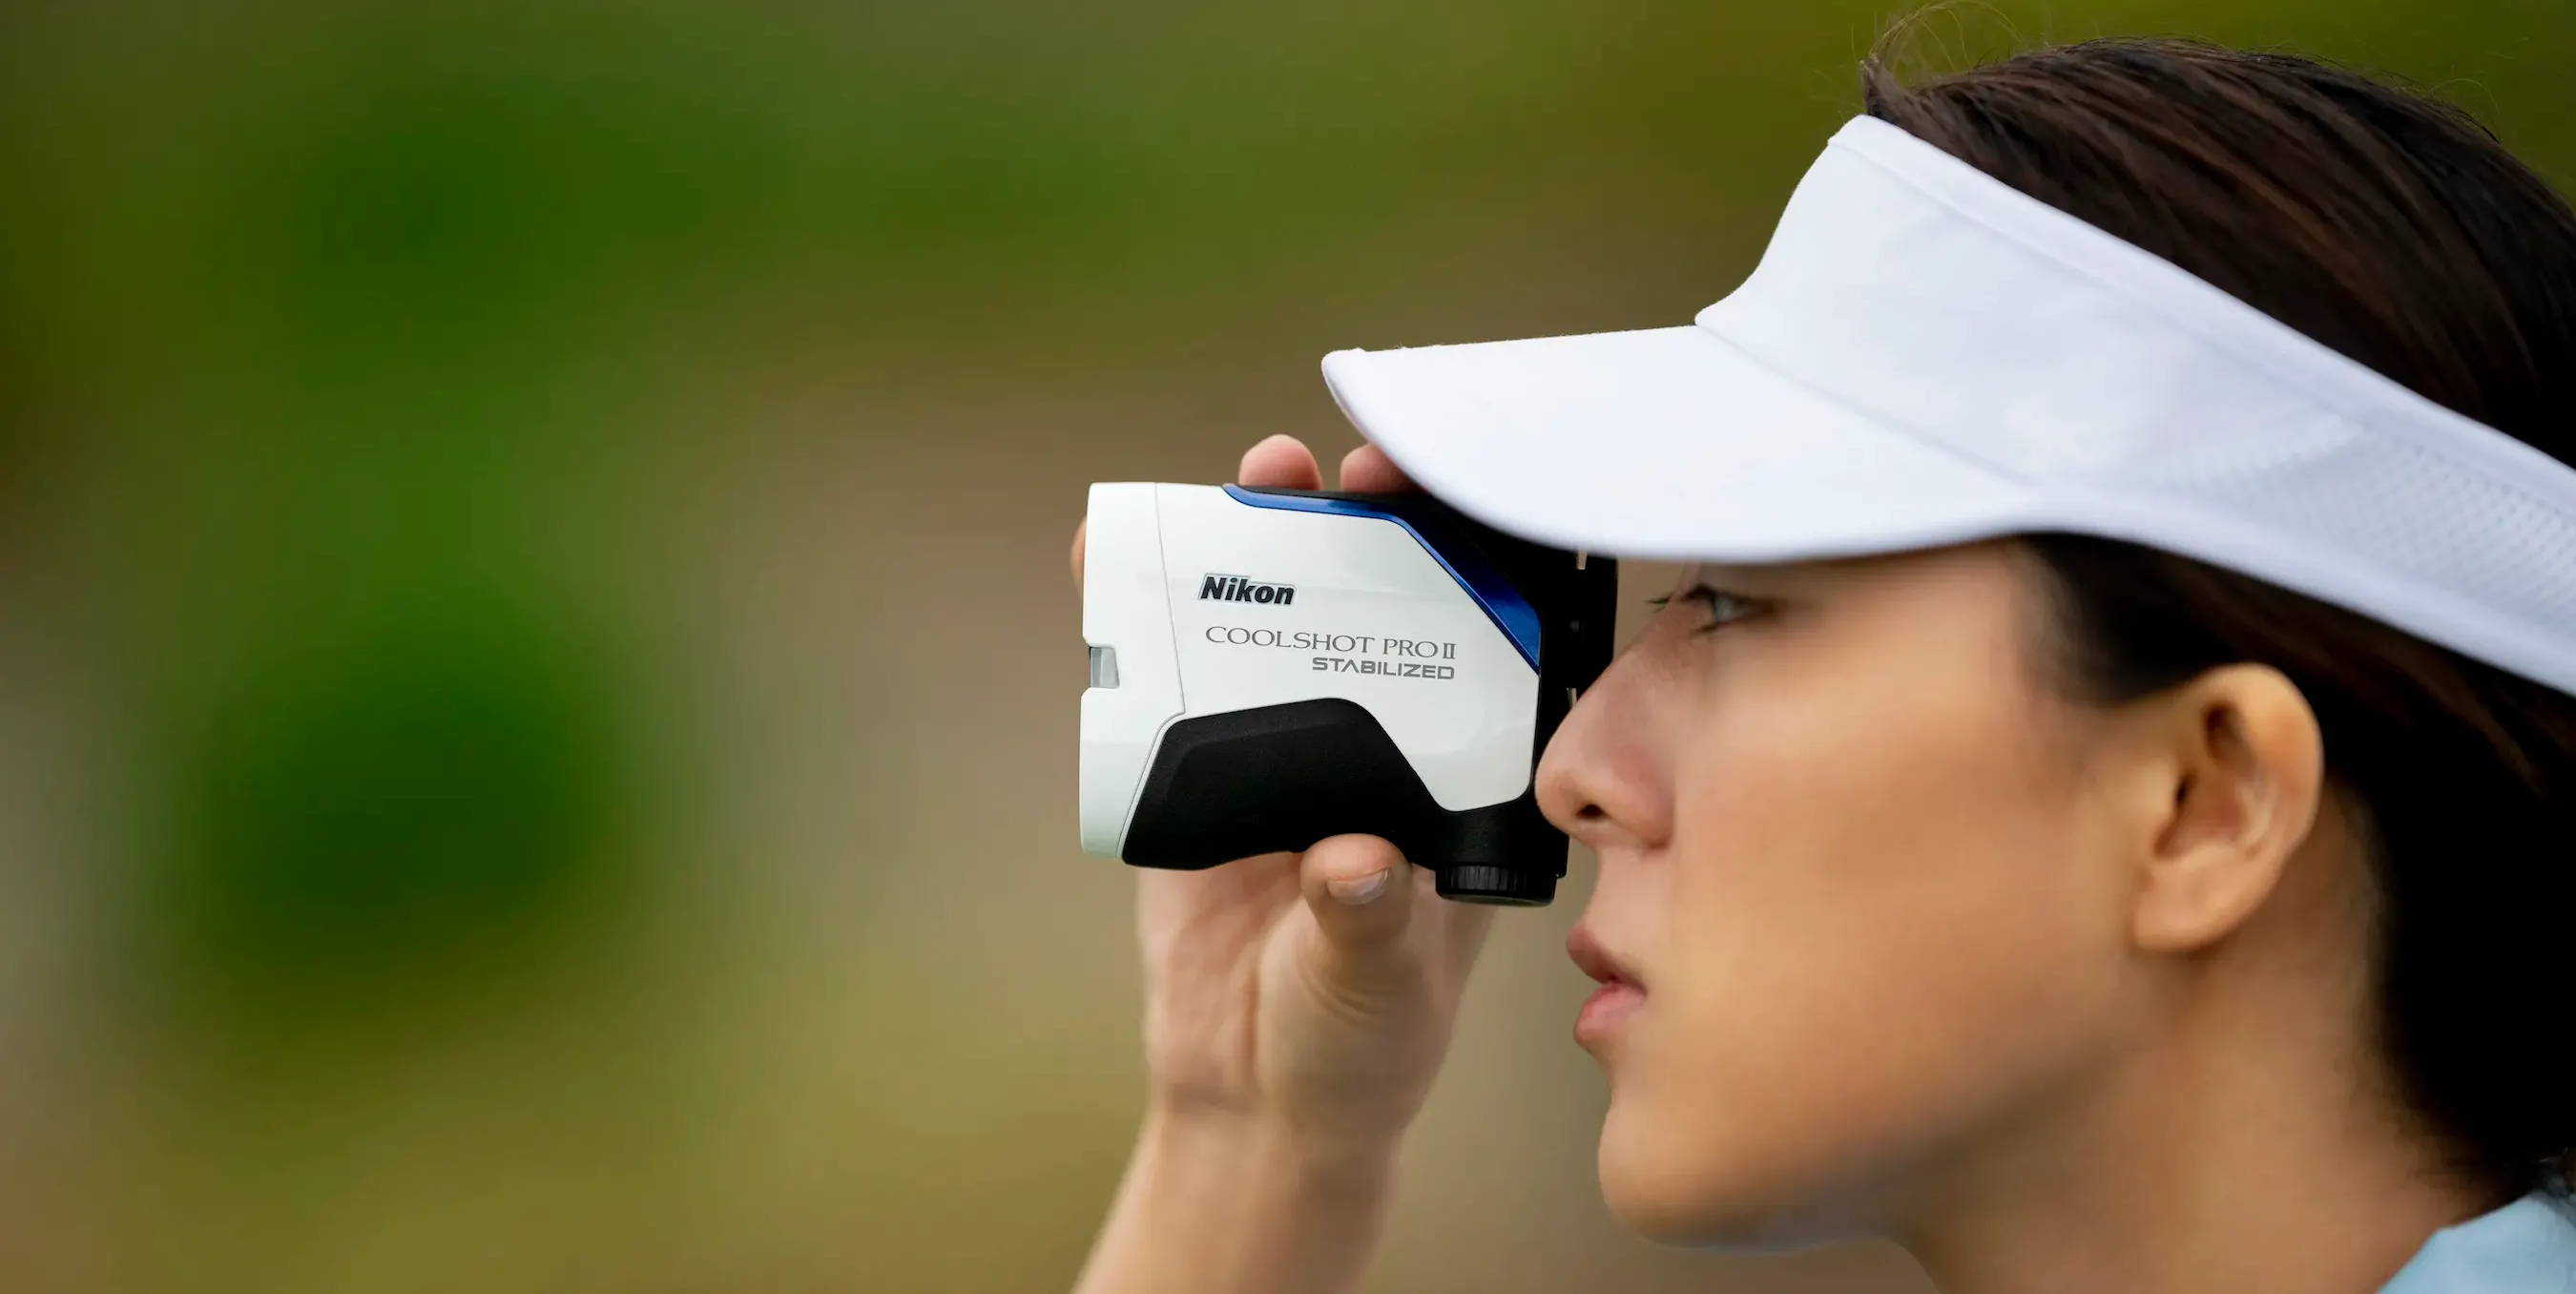 Golfer using her COOLSHOT PROII STABILIZED rangefinder on the course